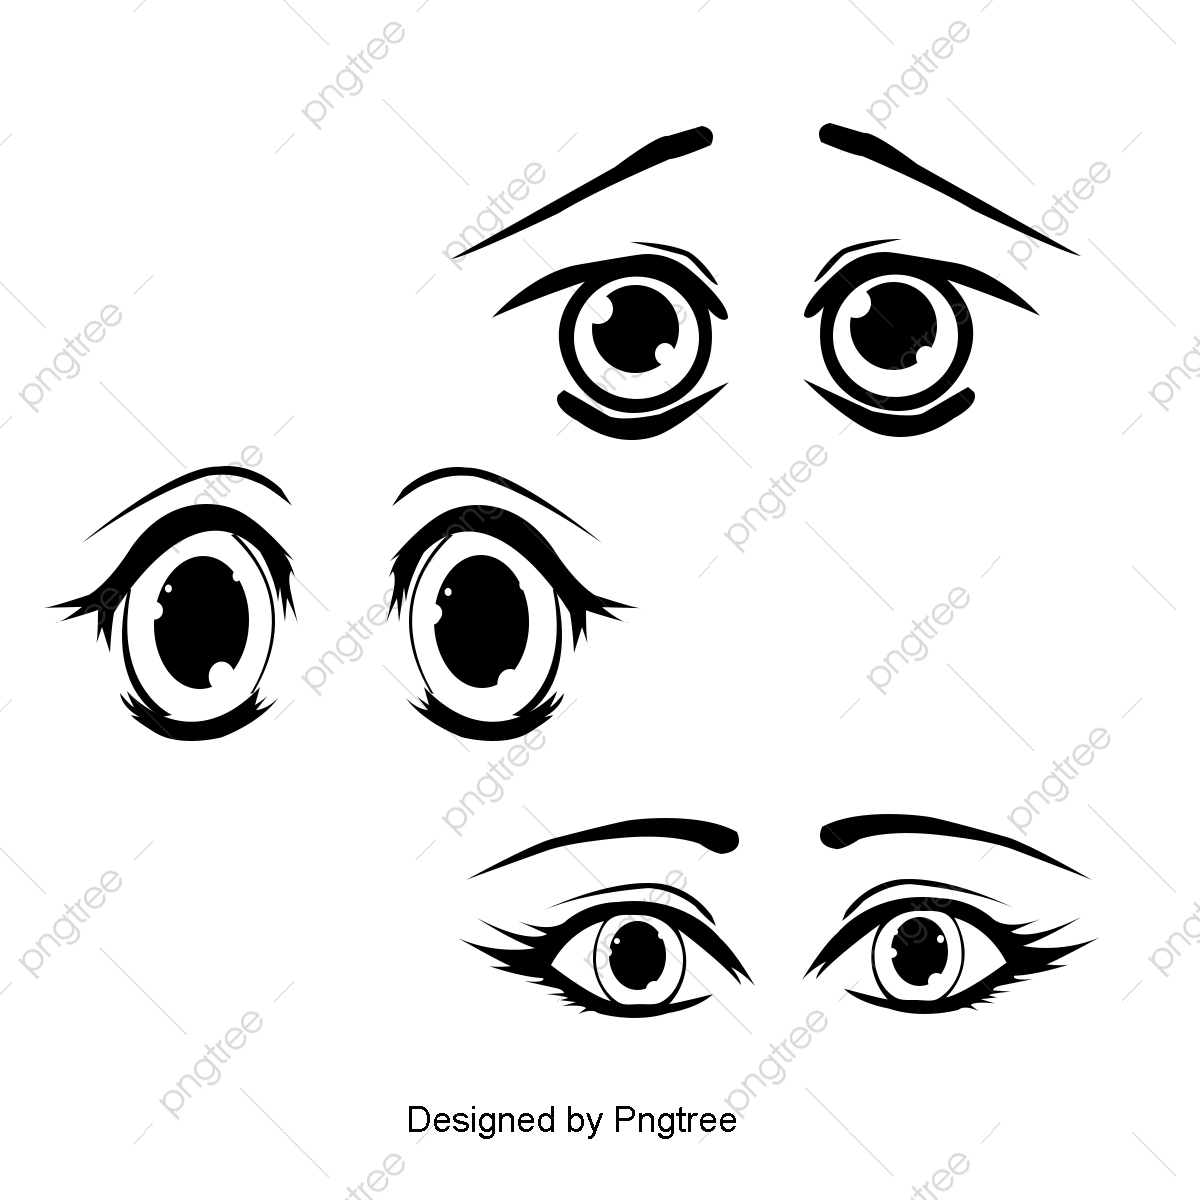 Cartoon Eyes Png Images Vector And Psd Files Free Download On